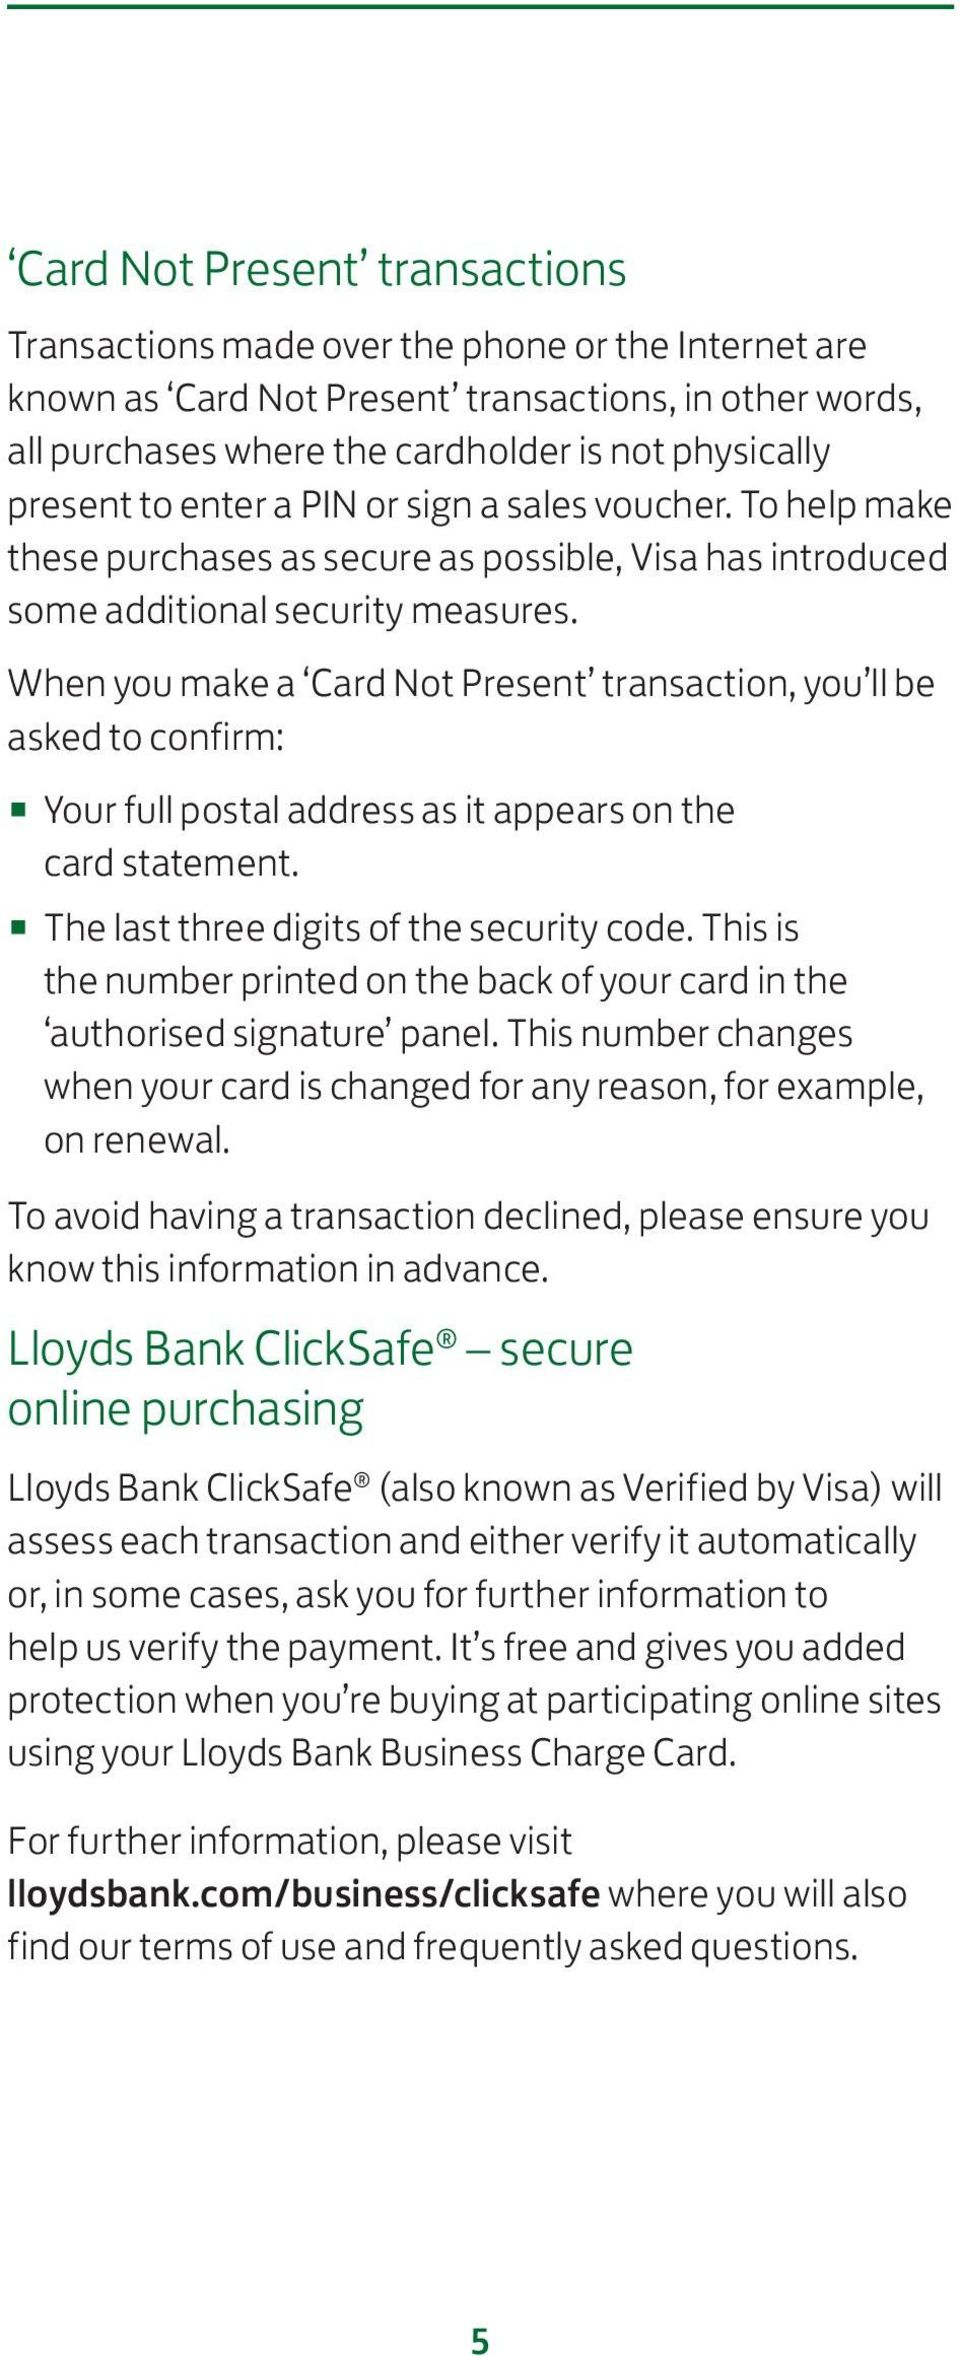 When you make a Card Not Present transaction, you ll be asked to confirm: Your full postal address as it appears on the card statement. The last three digits of the security code.